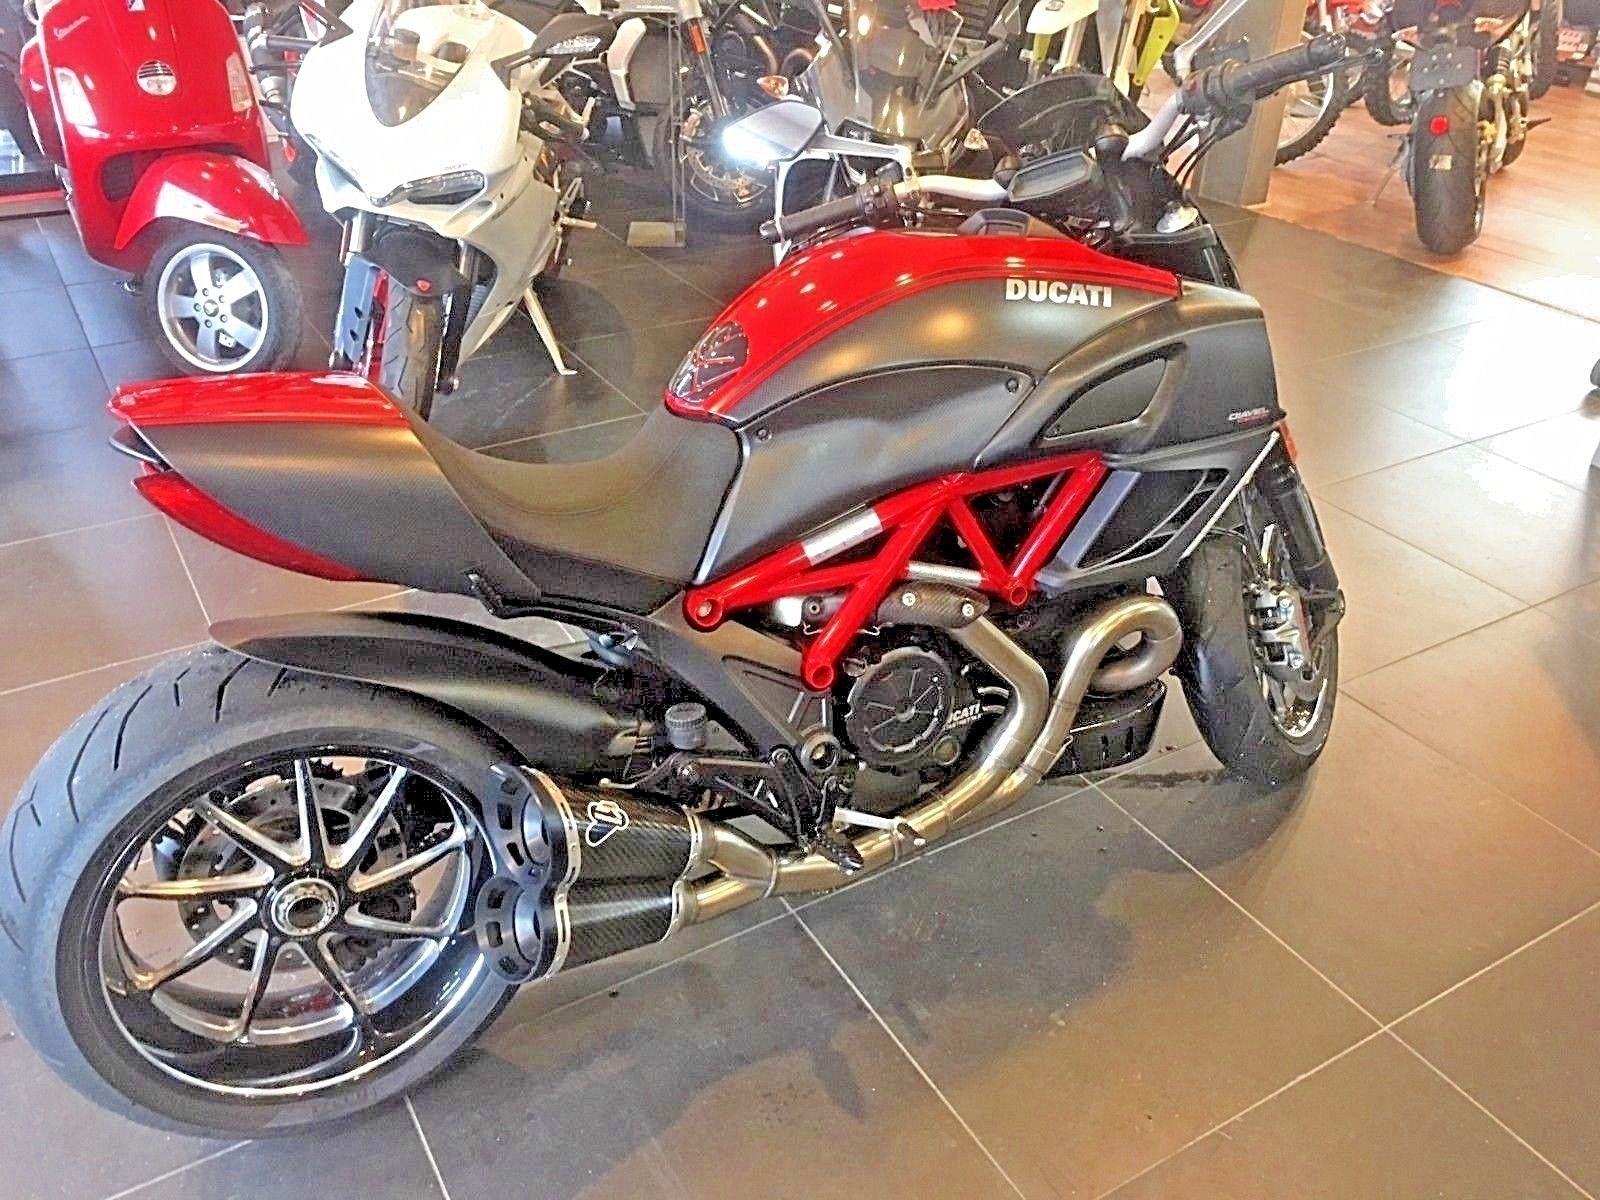 2013 Ducati Diavel Carbon Red In 2018 Stuff For Sale Pinterest